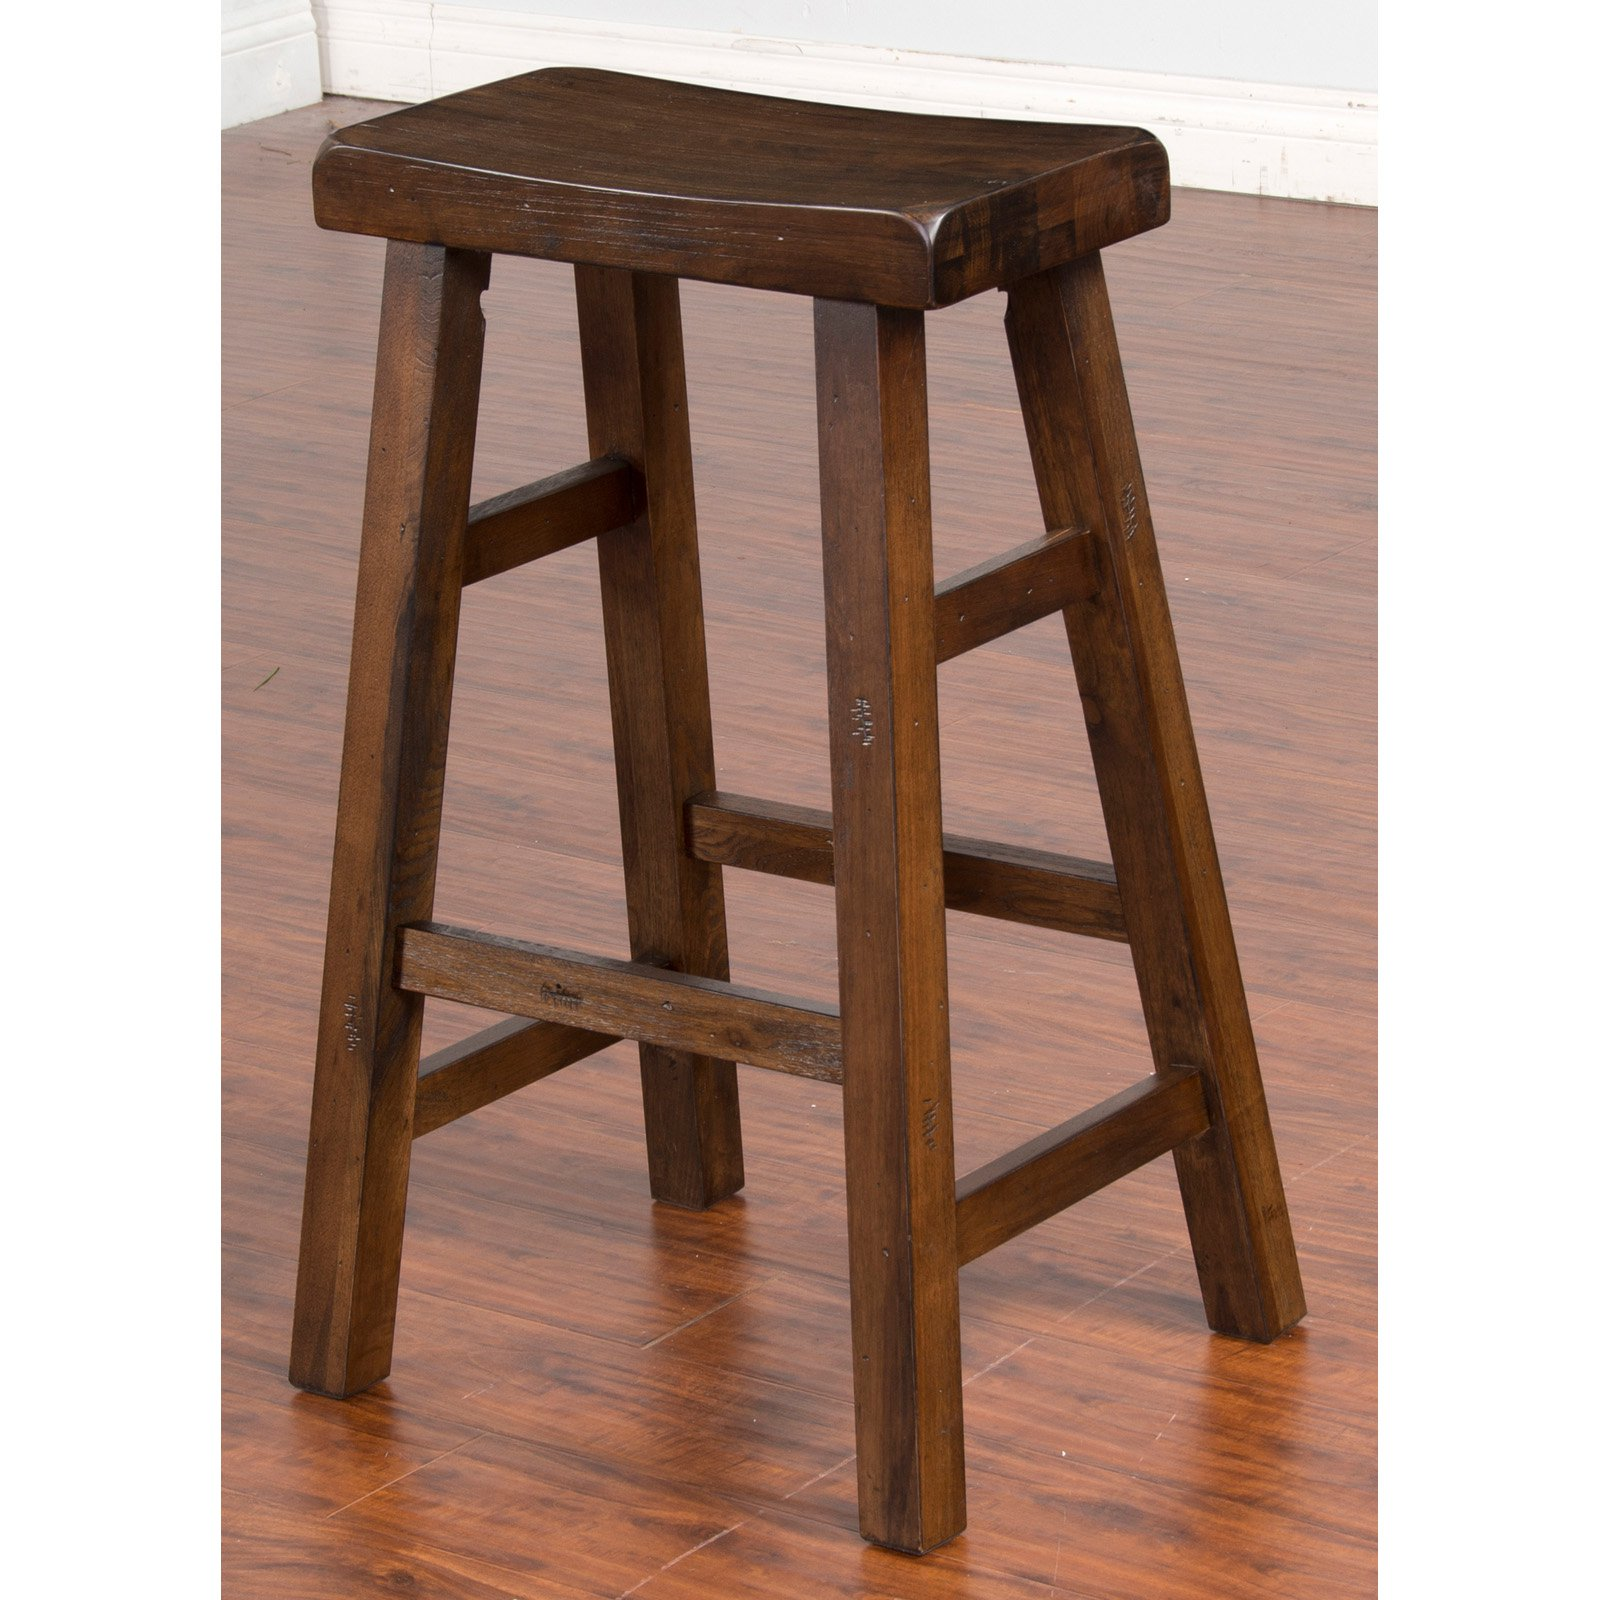 Saddle Seat Bar Stool  sc 1 st  Walmart & Saddle Seat Stool islam-shia.org